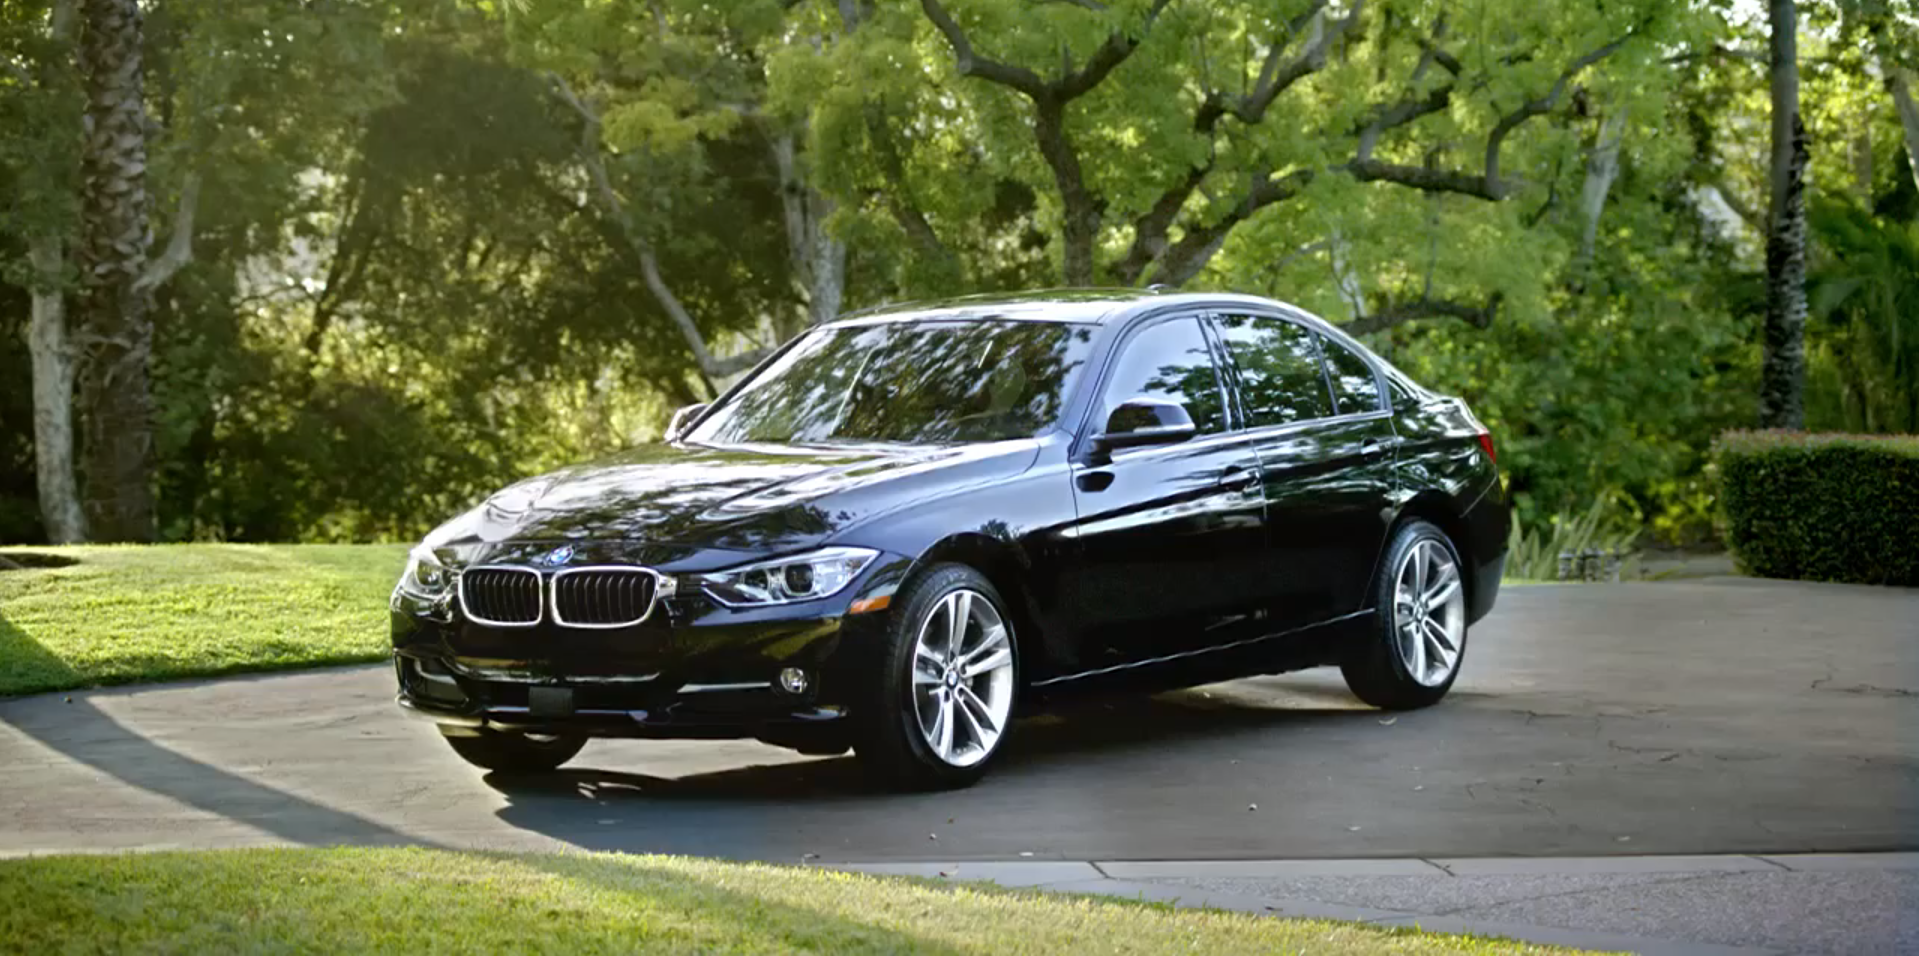 2017 Bmw 3 Series Mpg | Best new cars for 2018